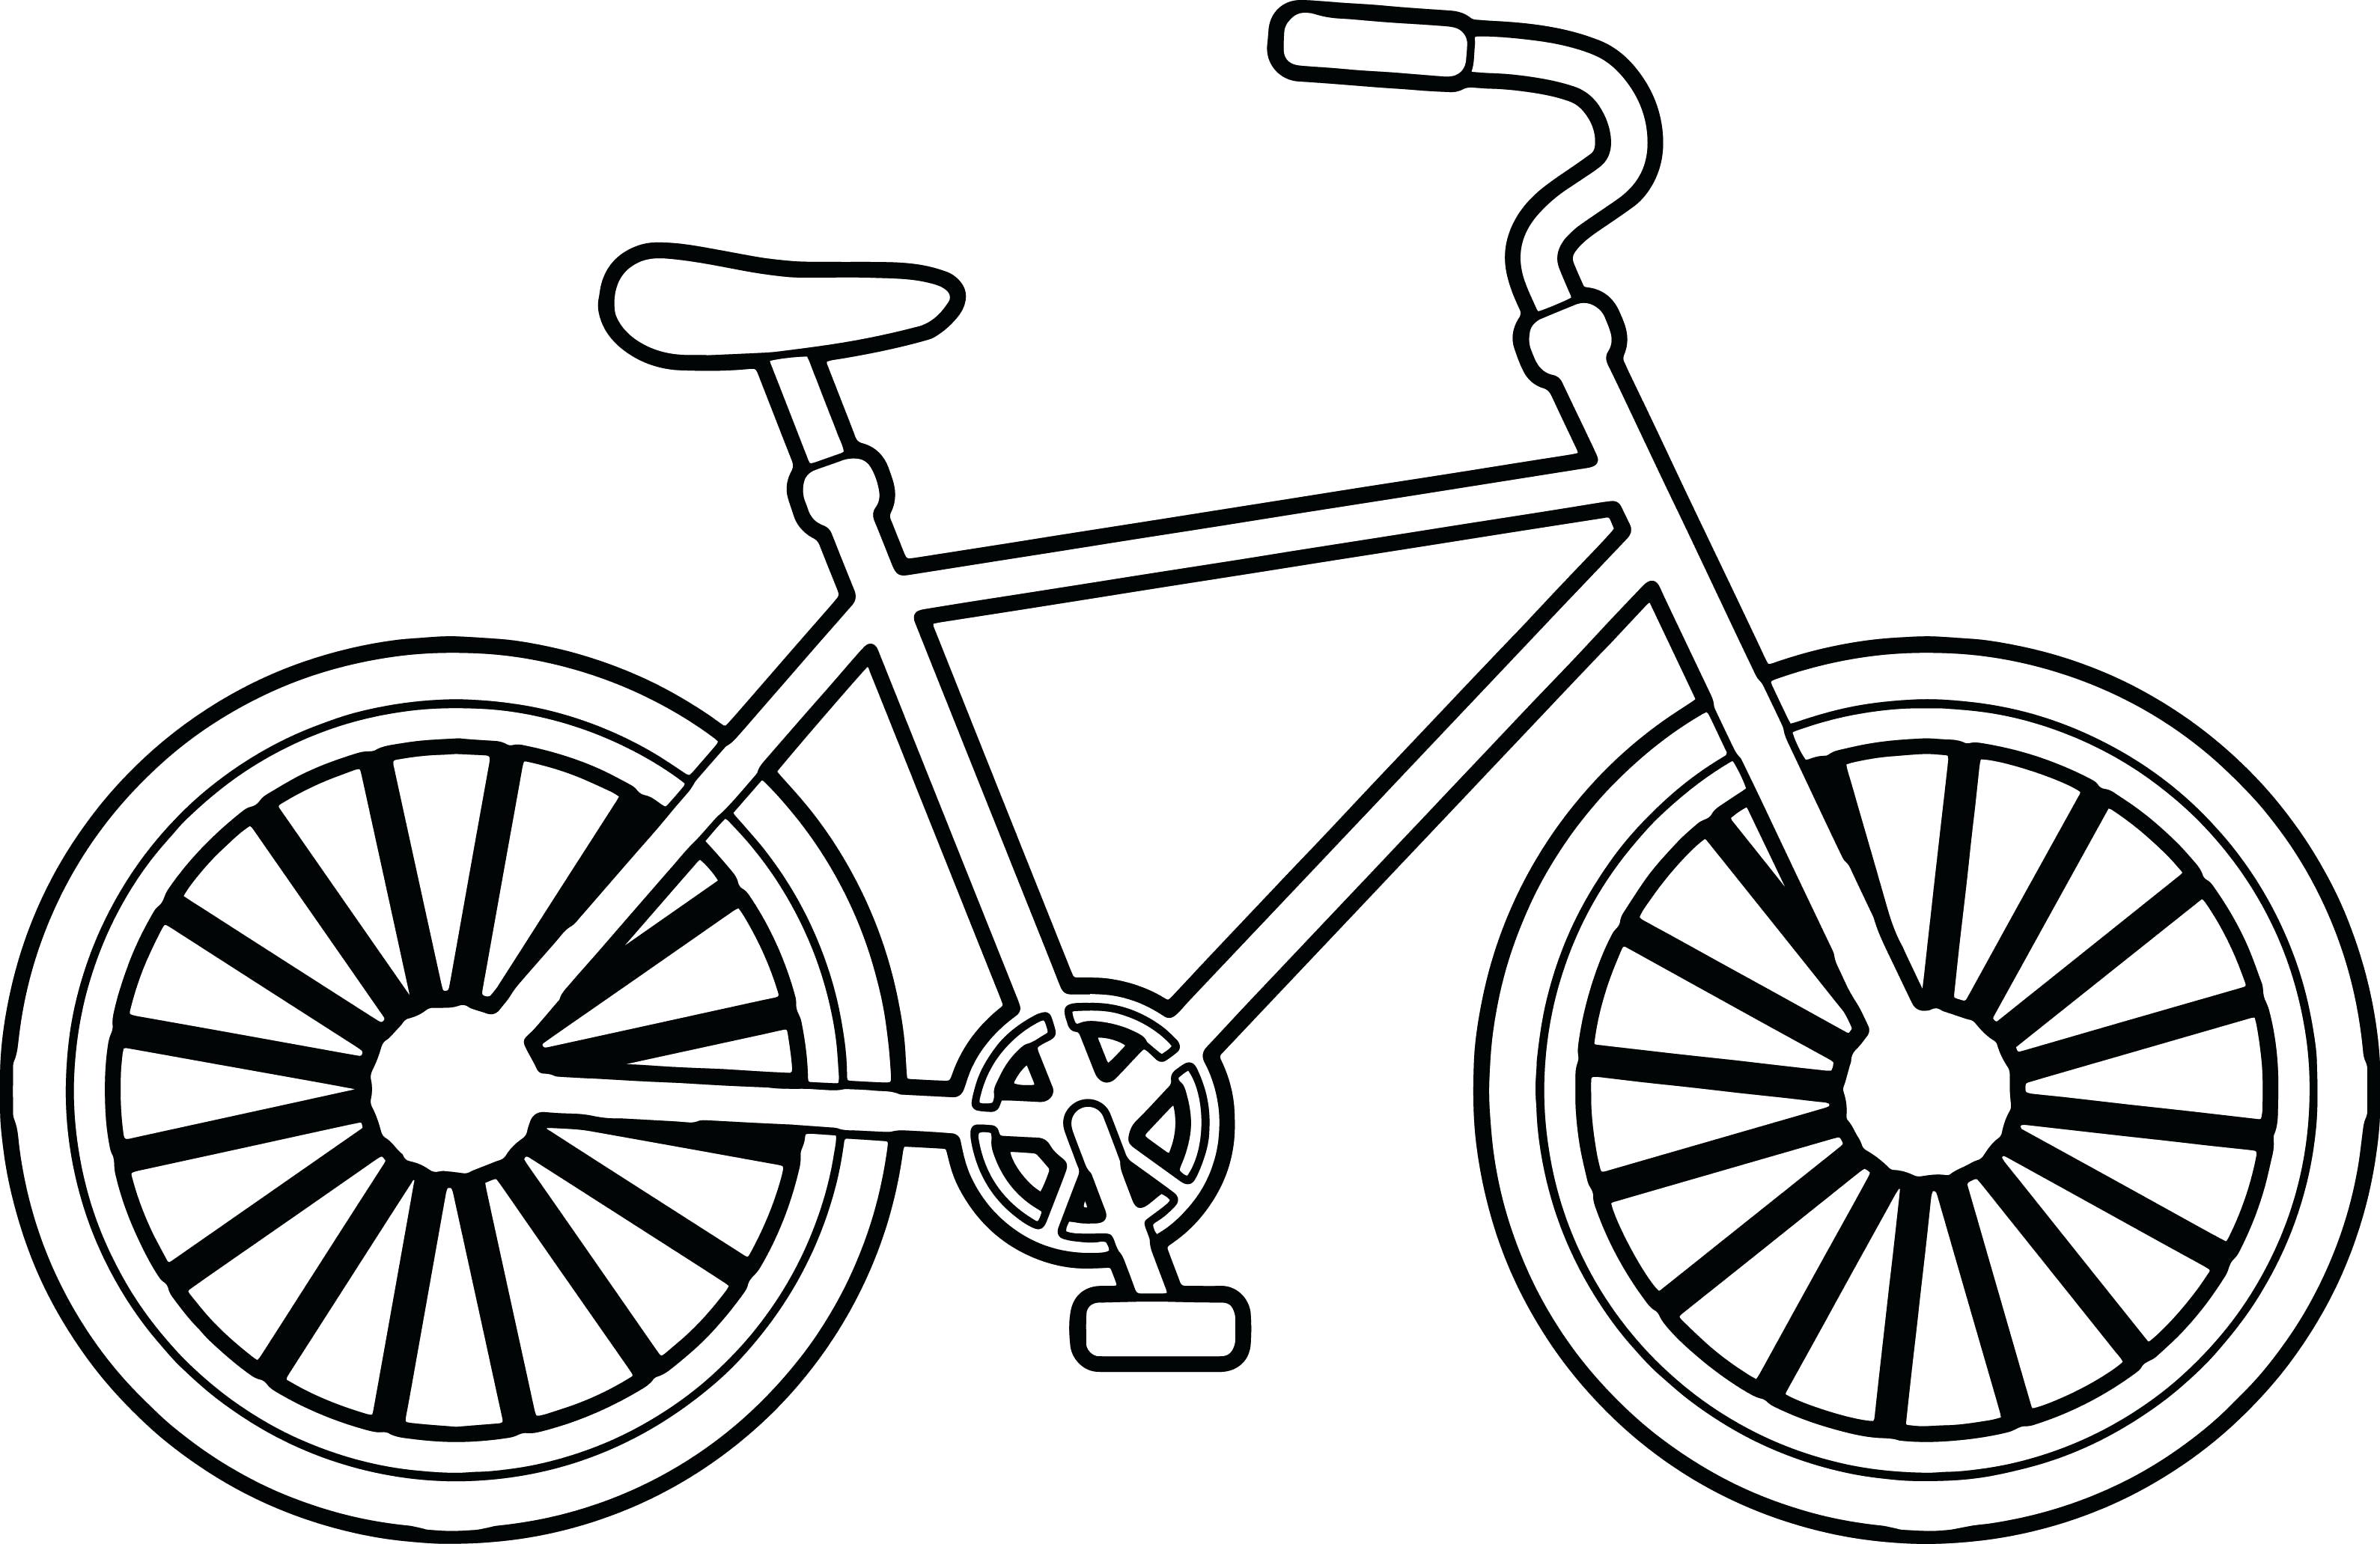 Simple Bike Drawing at GetDrawings.com | Free for personal use ...